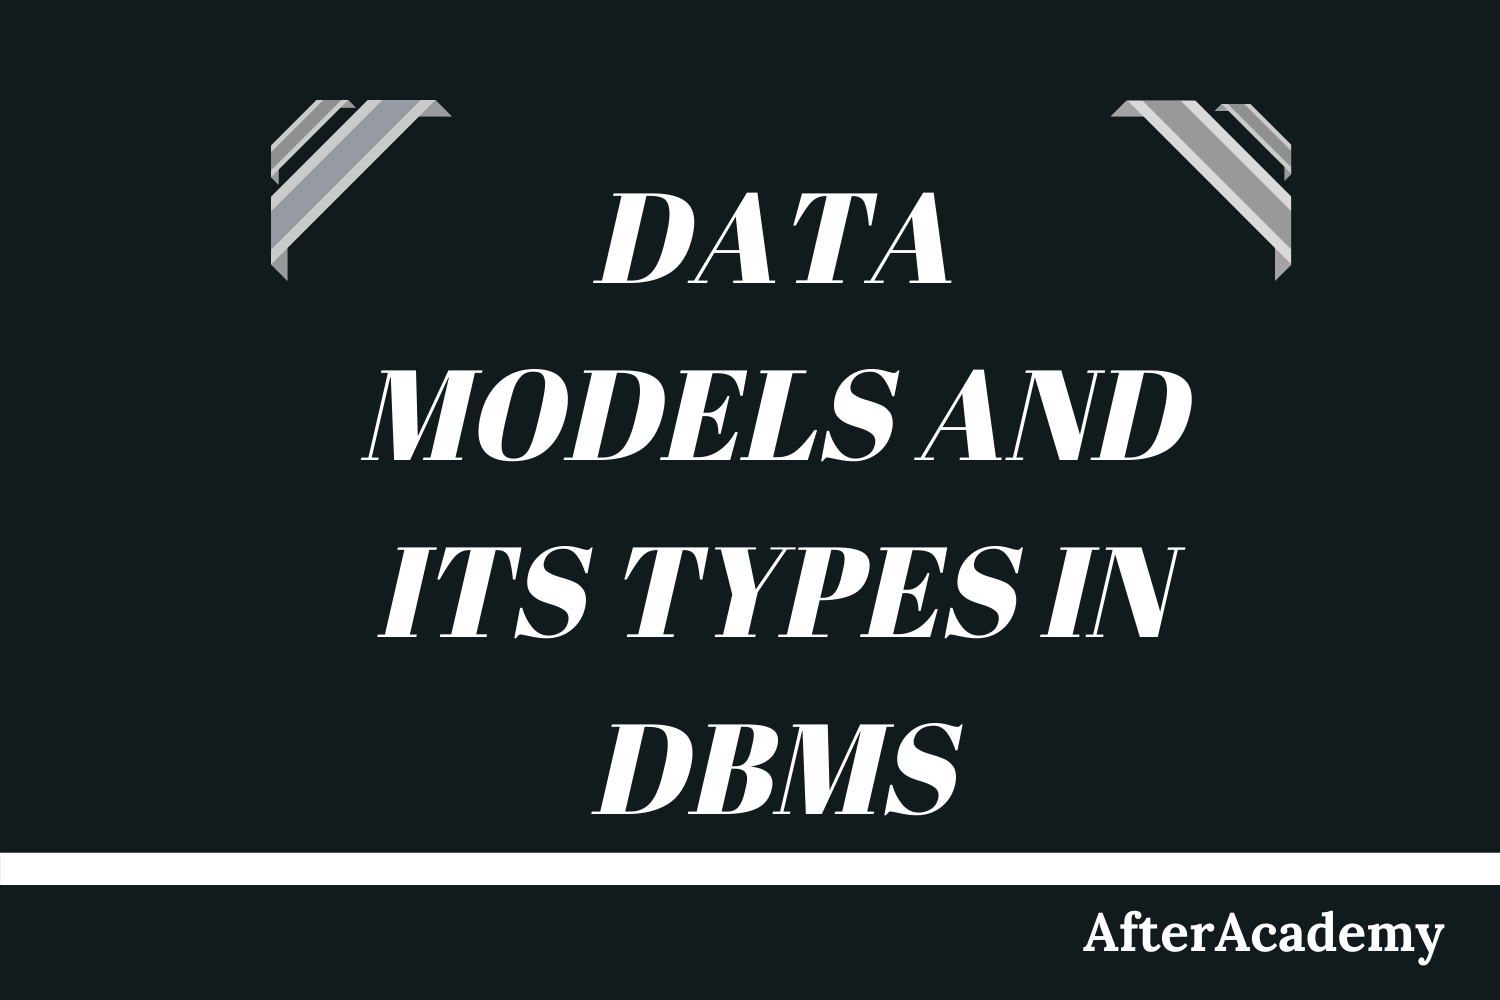 What is Data Model in DBMS and what are its types?